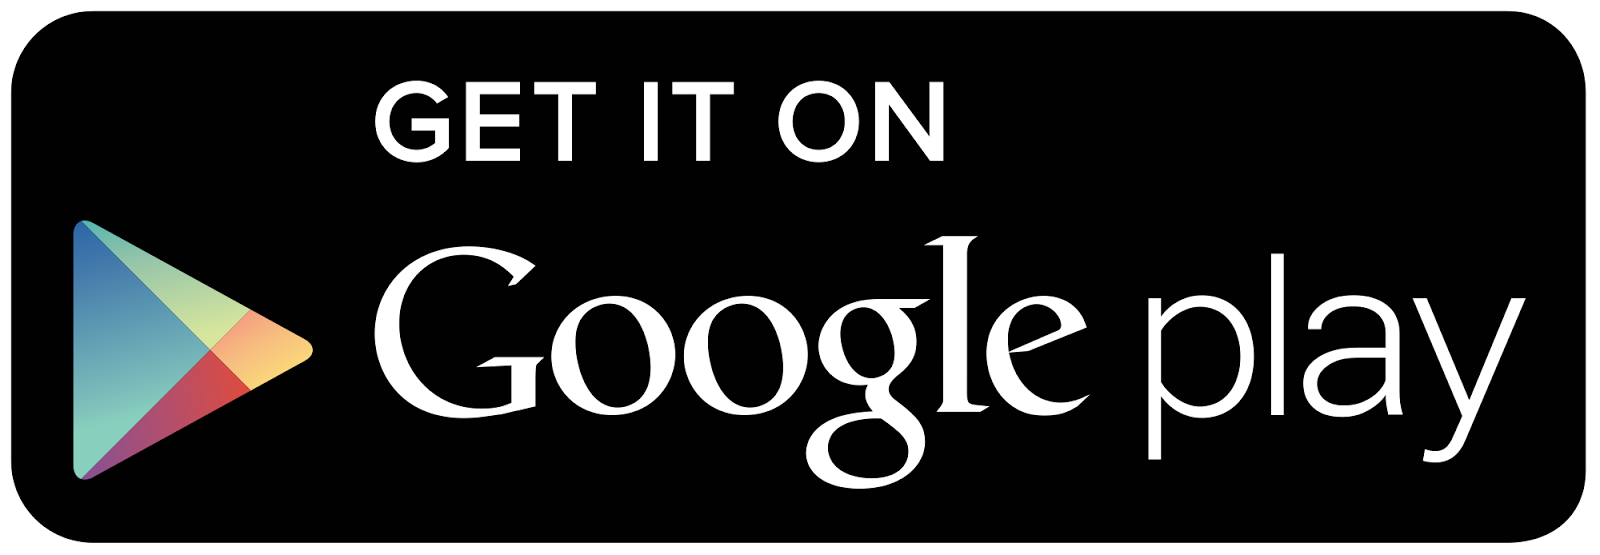 These Chinese Companies Should Fear Google - Alphabet Inc